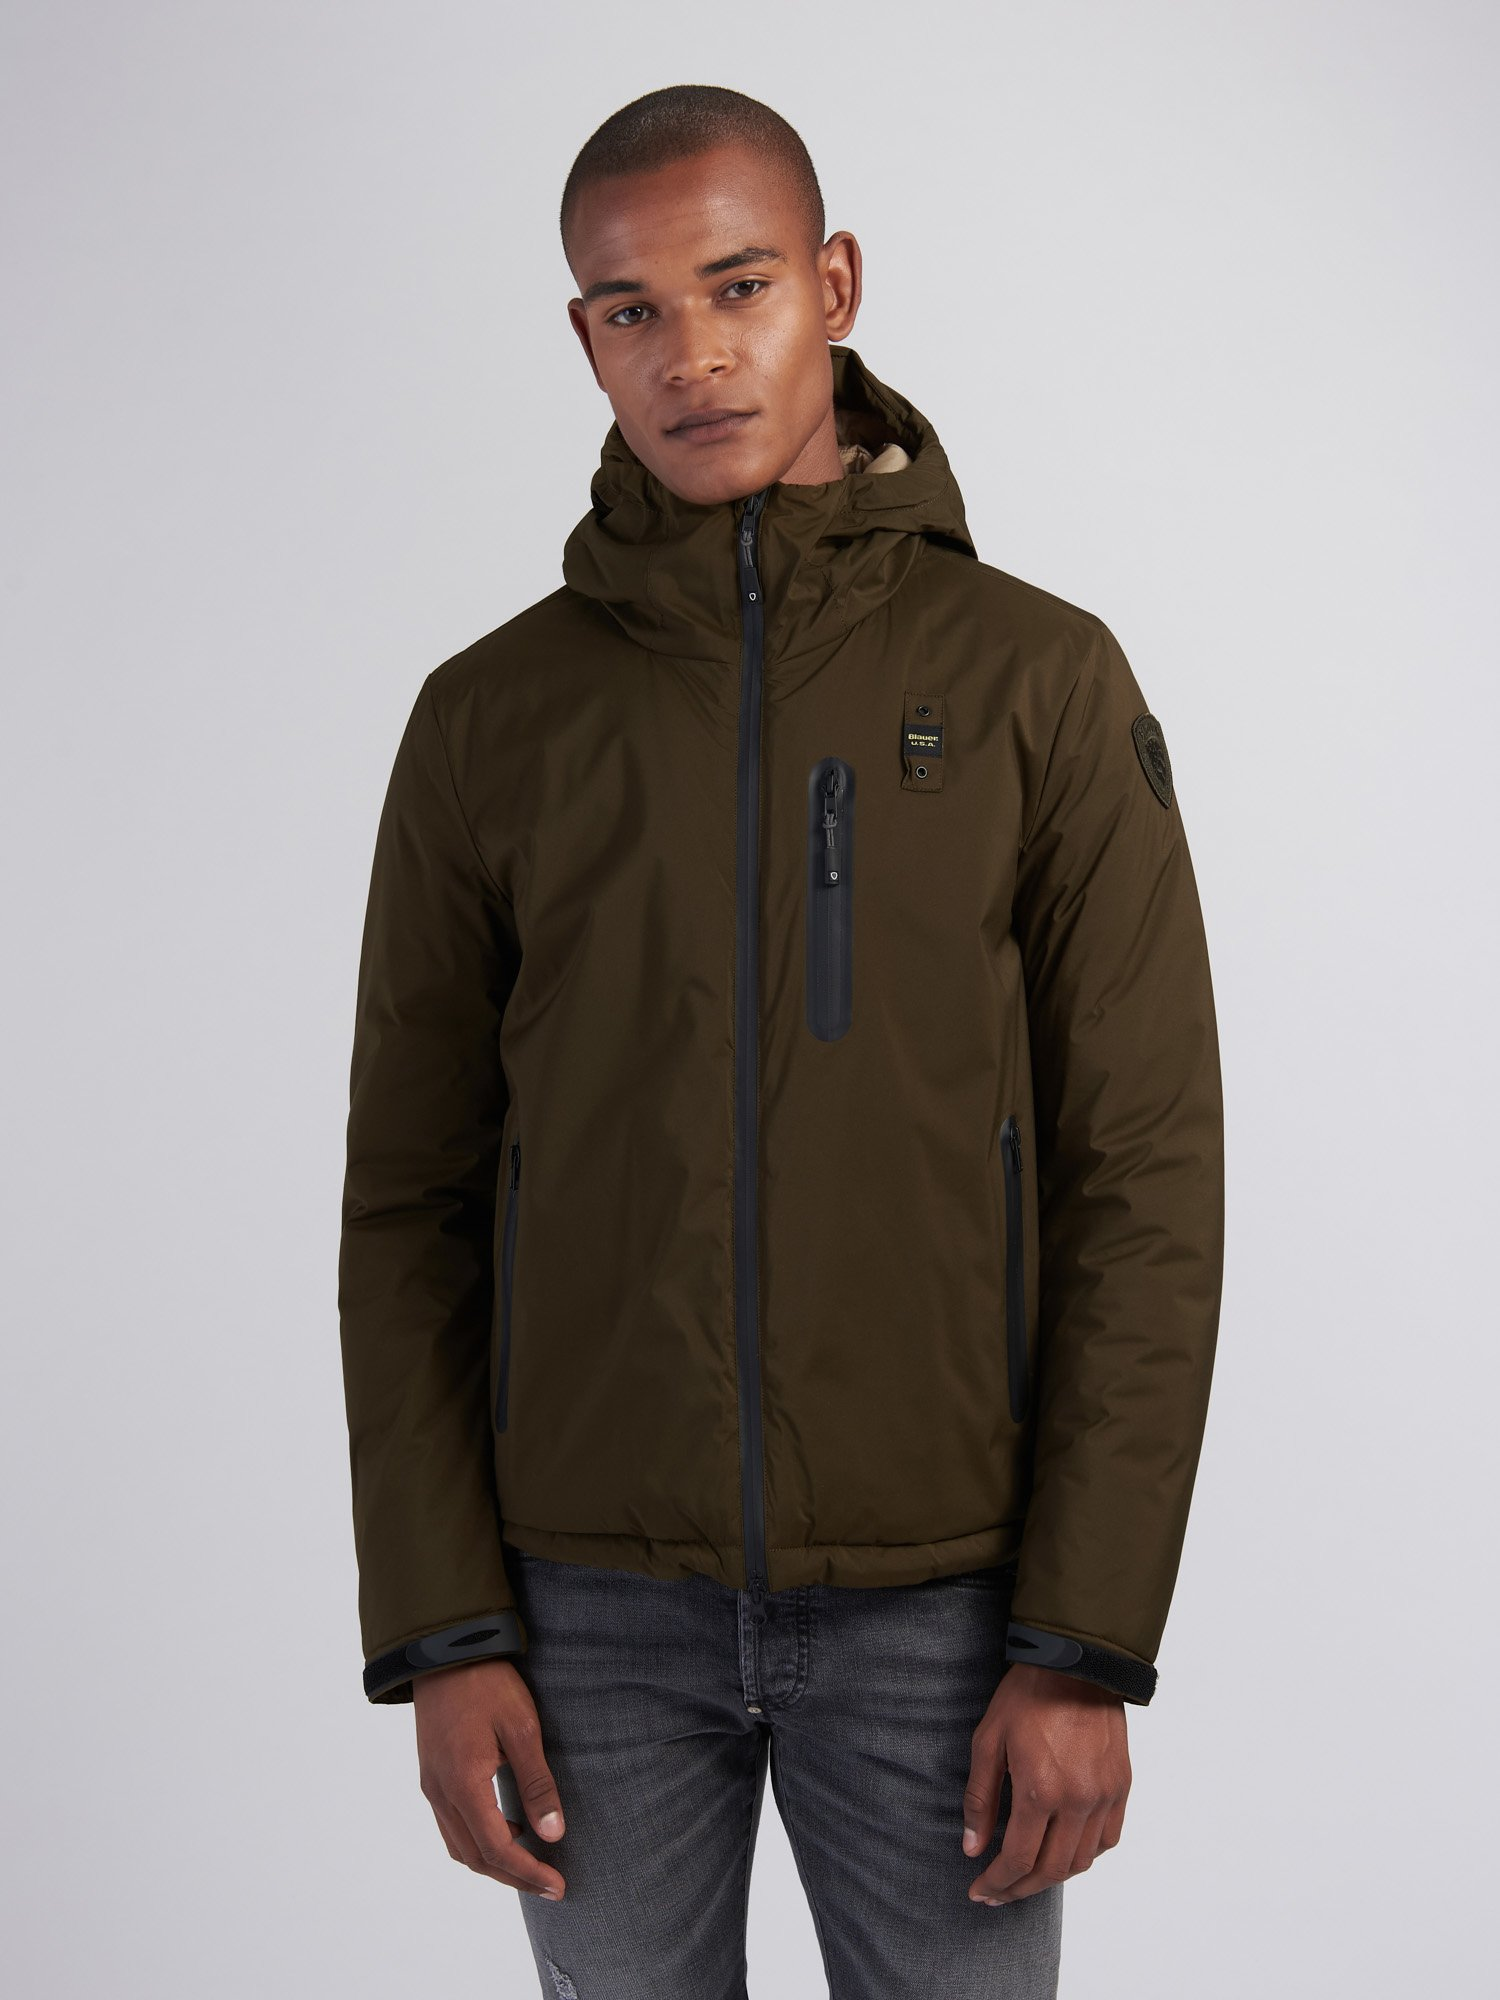 EUGENE JACKET WITH ECO-FRIENDLY PADDING - Blauer